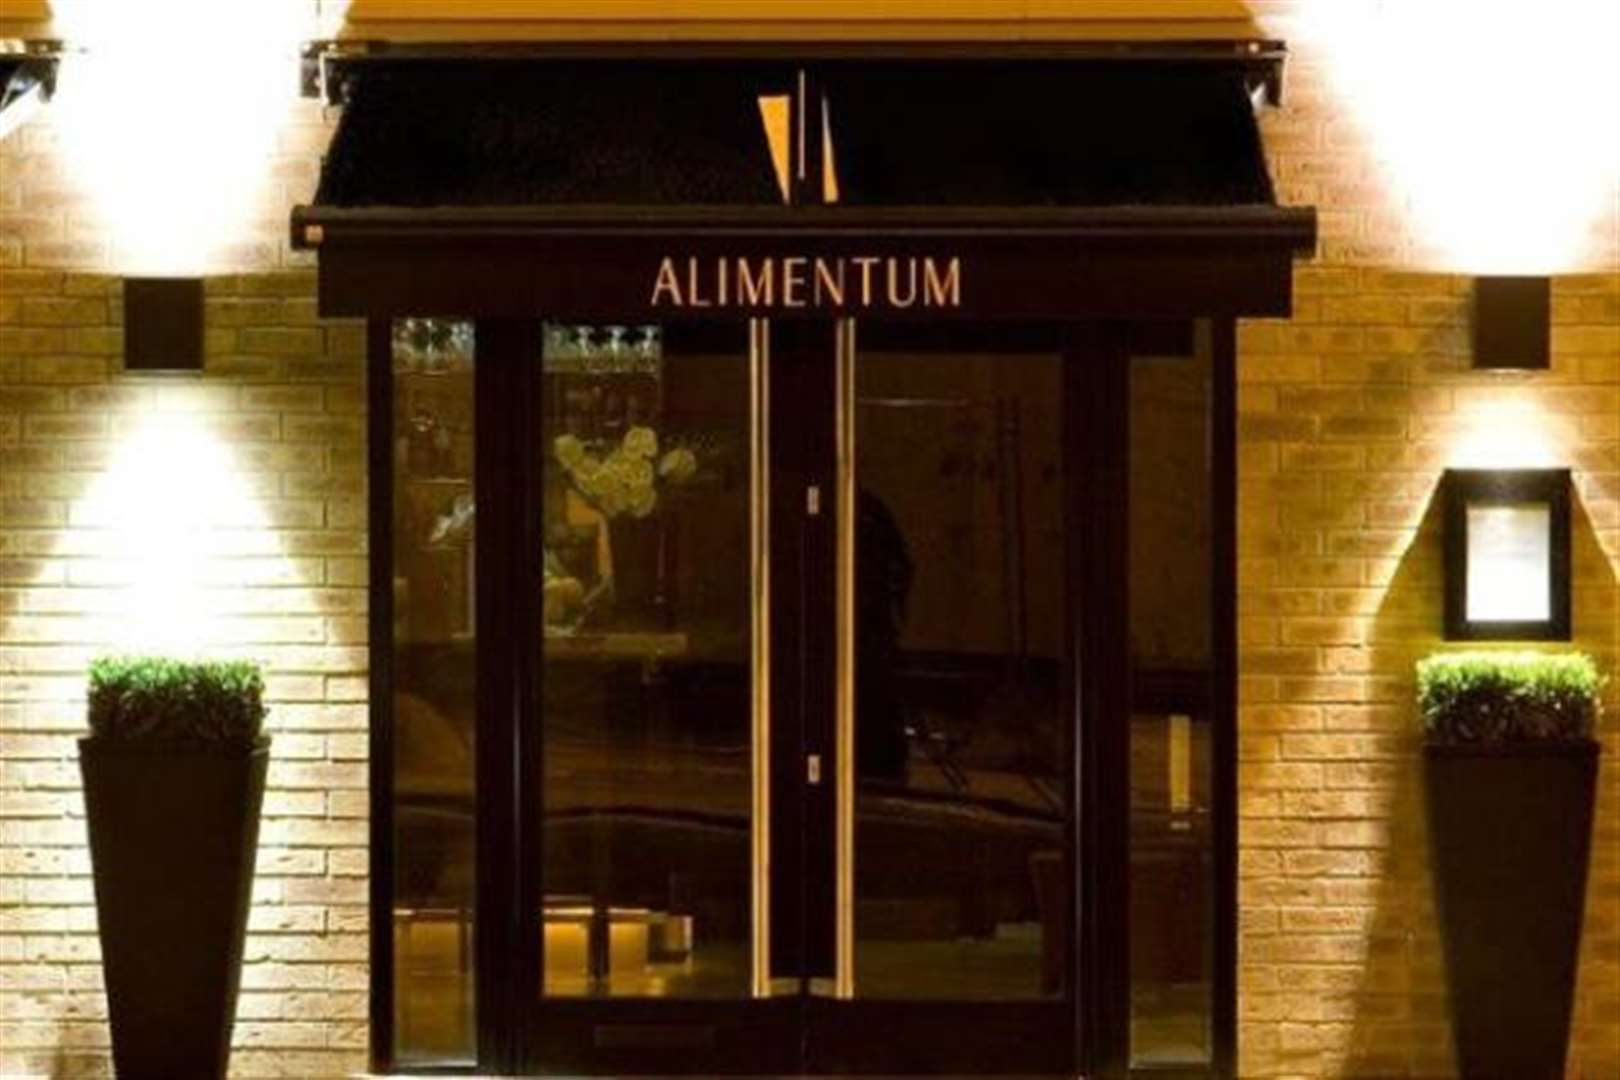 Cambridge fine dining restaurant Alimentum closed a year after losing Michelin star